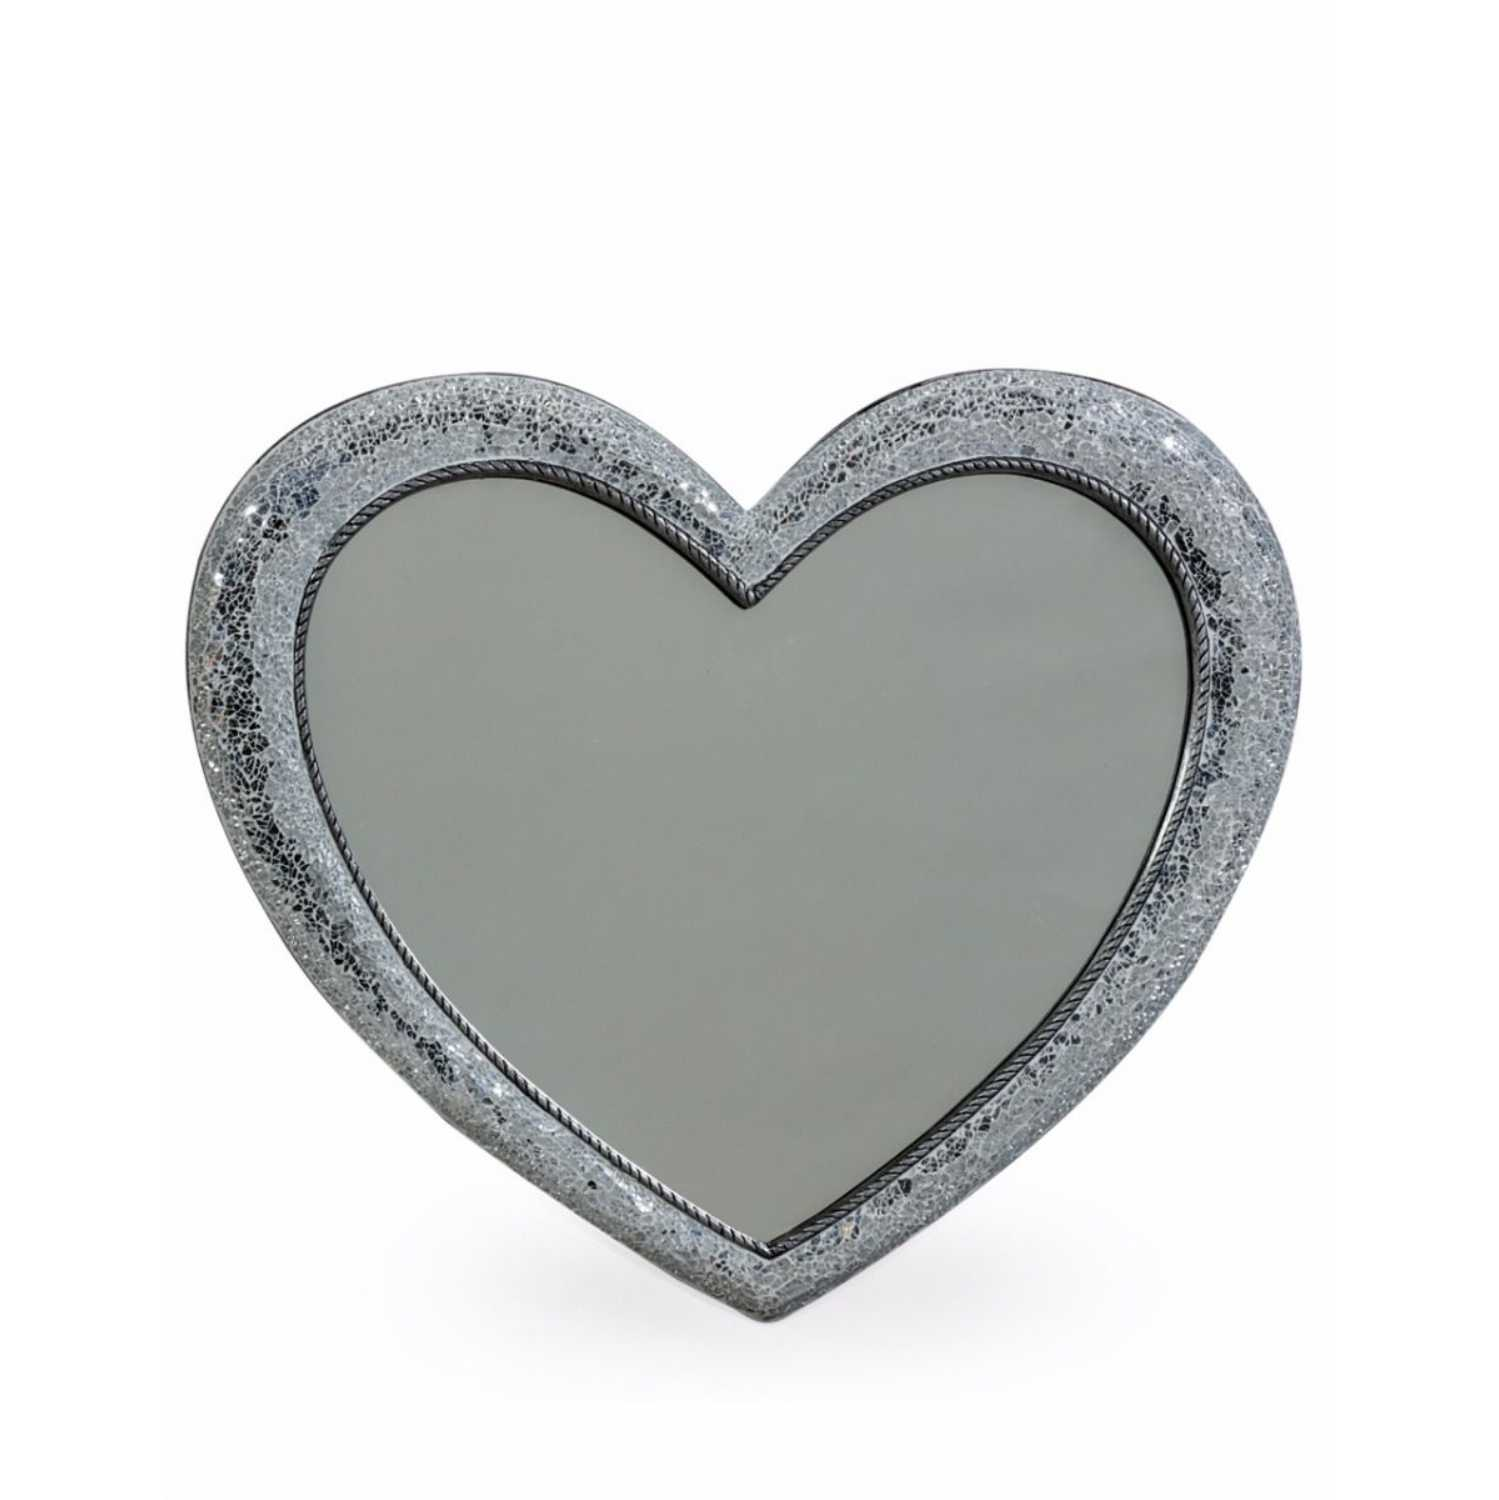 Large Mosaic Crackle Glass Framed Heart Shaped Wall Mirror